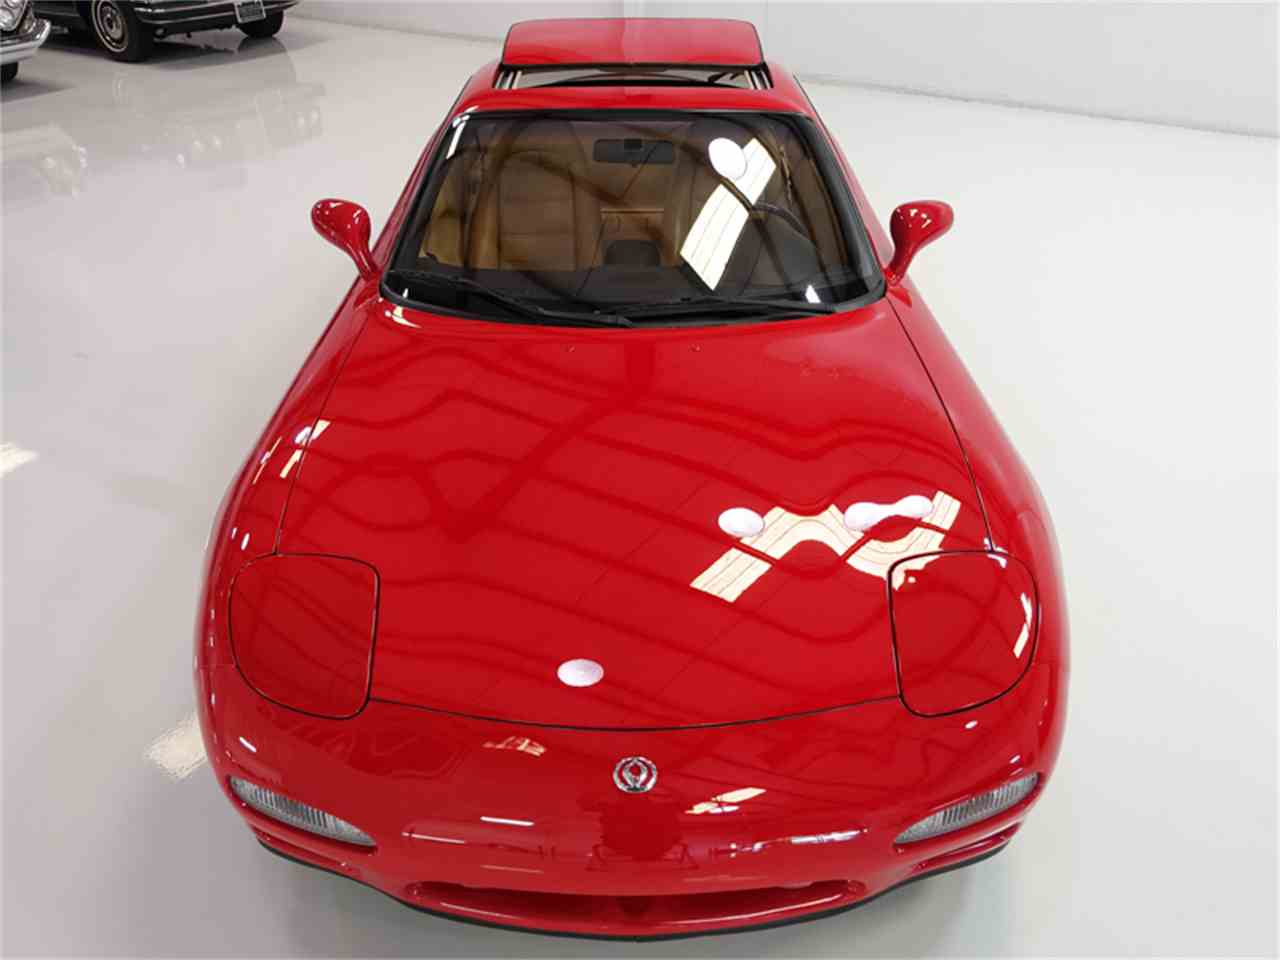 Large Picture of '93 Mazda RX-7 Offered by Daniel Schmitt & Co. - LVIB